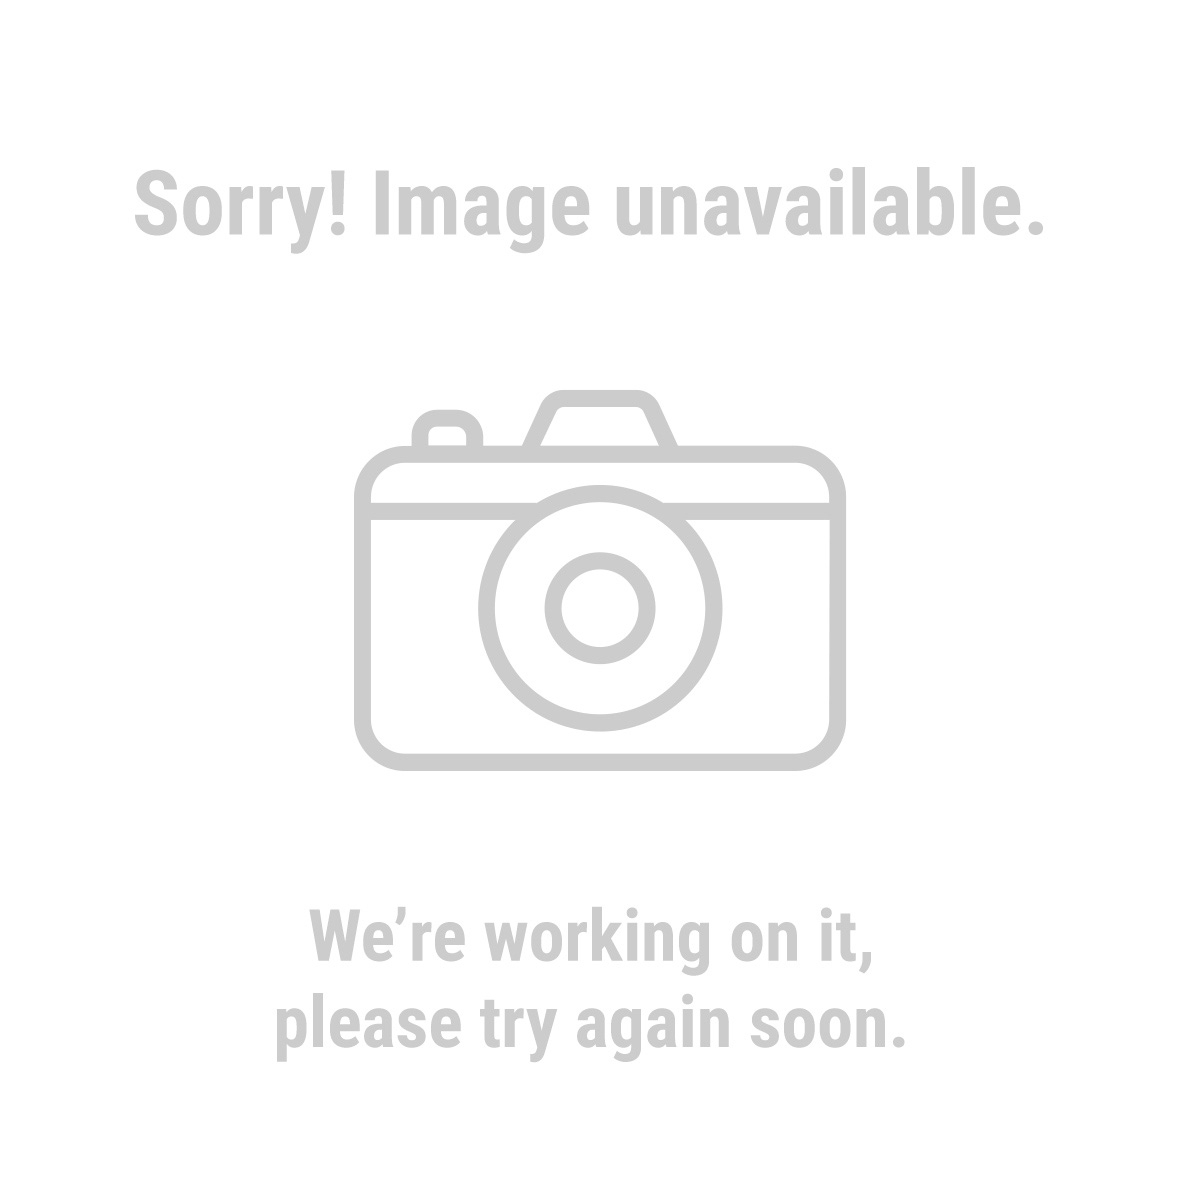 "HFT 30871 5 ft. 6'' x 7 ft. 6"" Reflective Heavy Duty Silver Tarp"